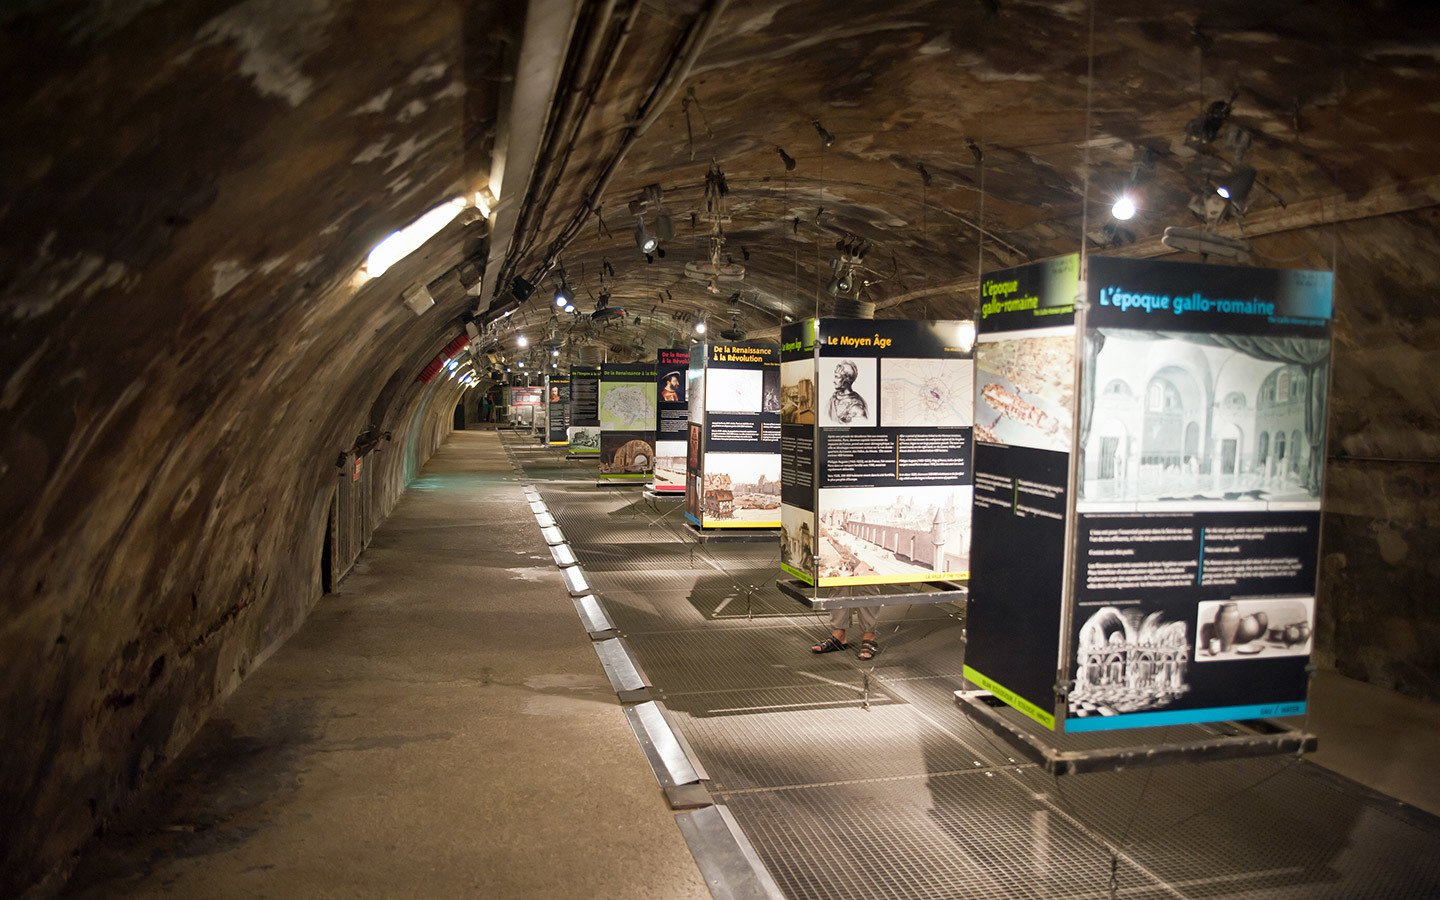 Exhibits down in the tunnels at the Sewer Museum